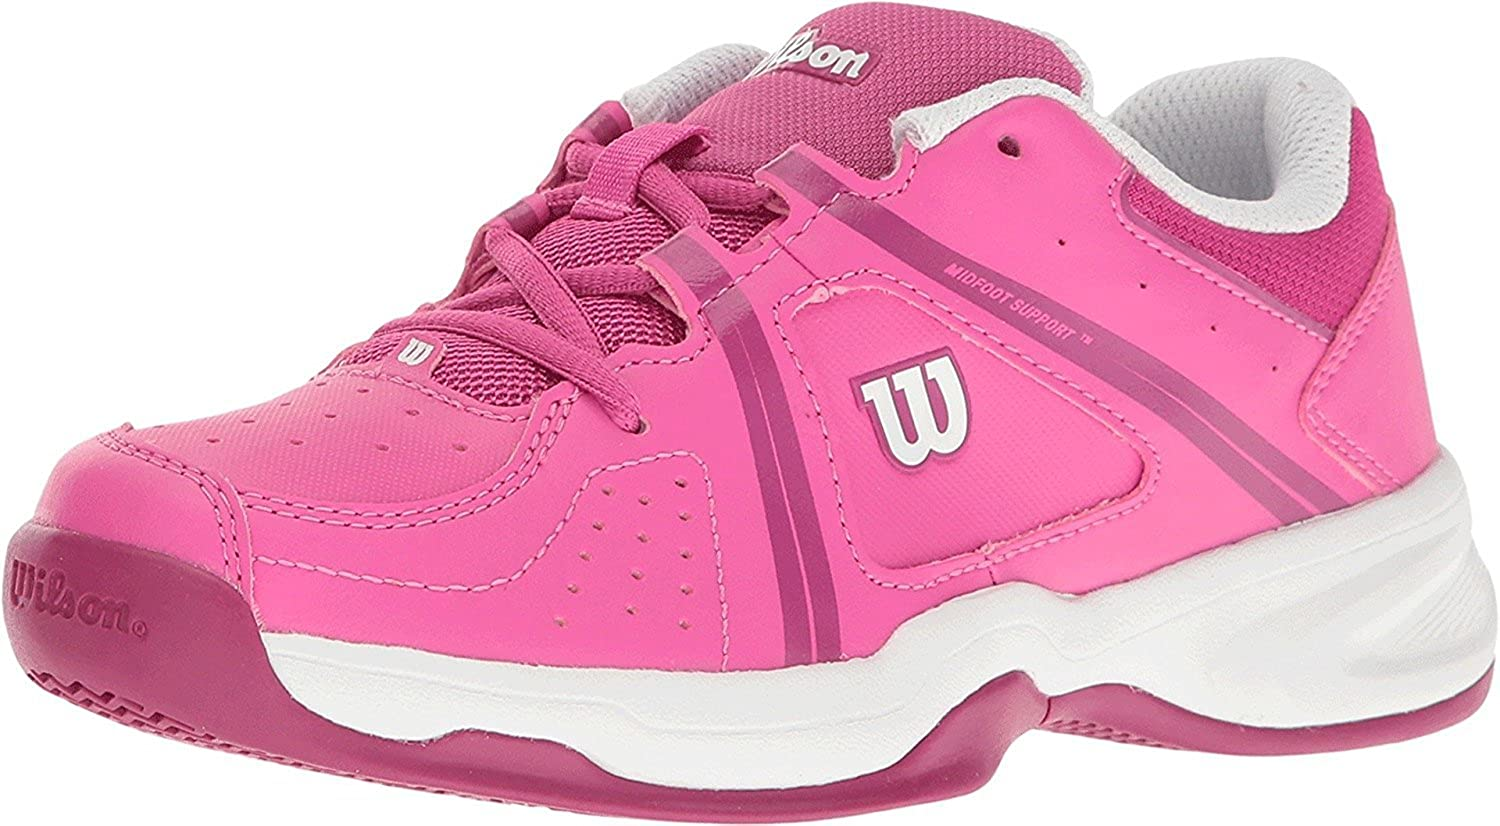 Wilson Envy Jr Tennis Shoe - Rose/Violet/White